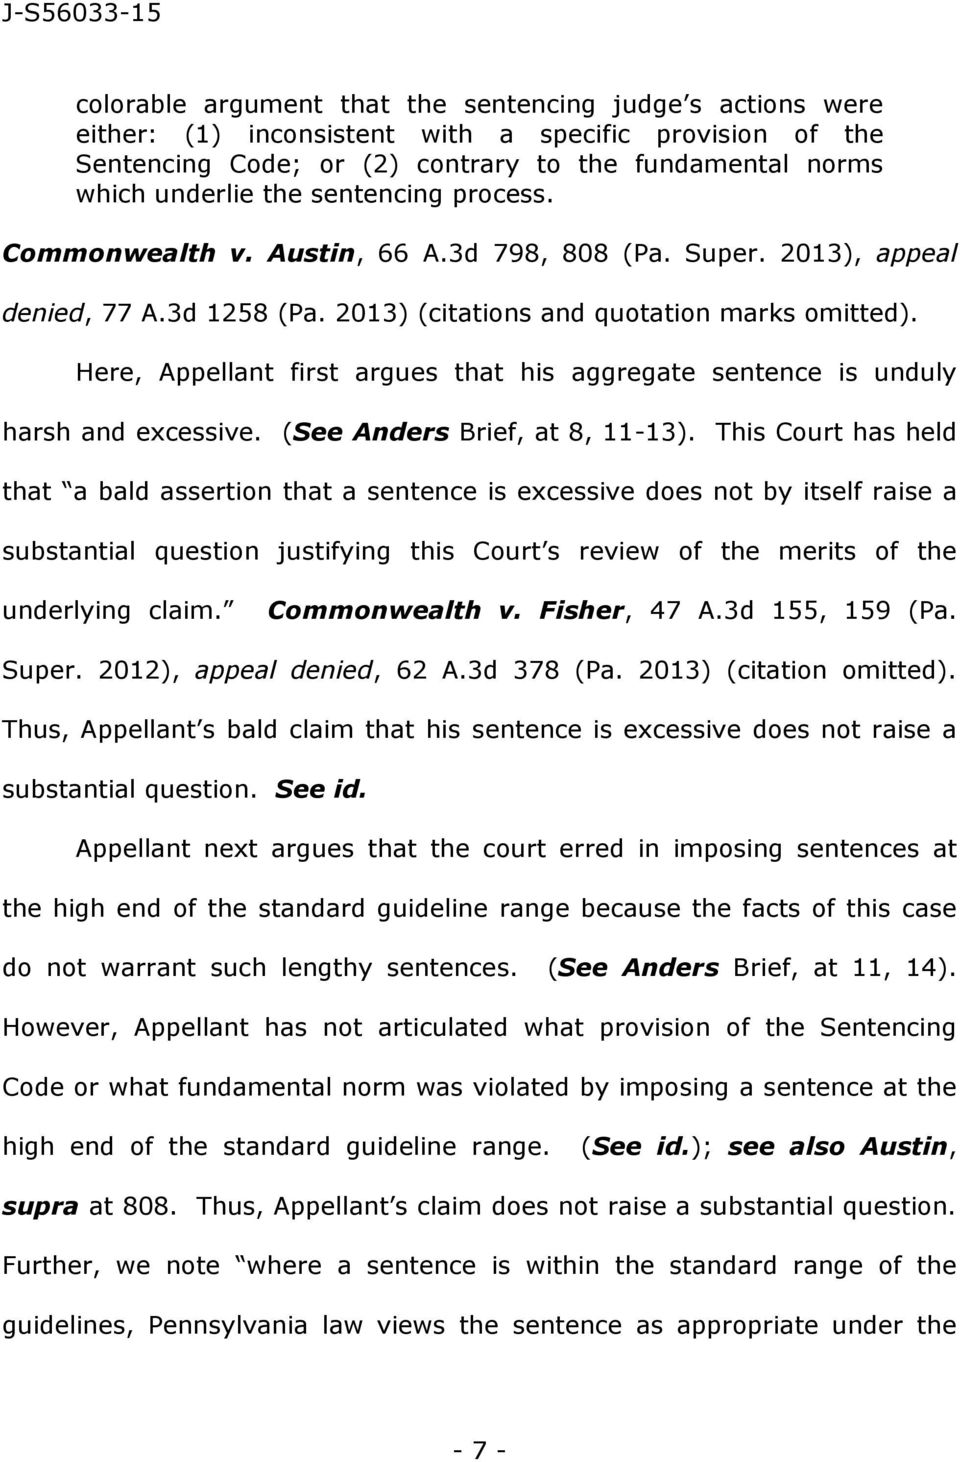 Here, Appellant first argues that his aggregate sentence is unduly harsh and excessive. (See Anders Brief, at 8, 11-13).